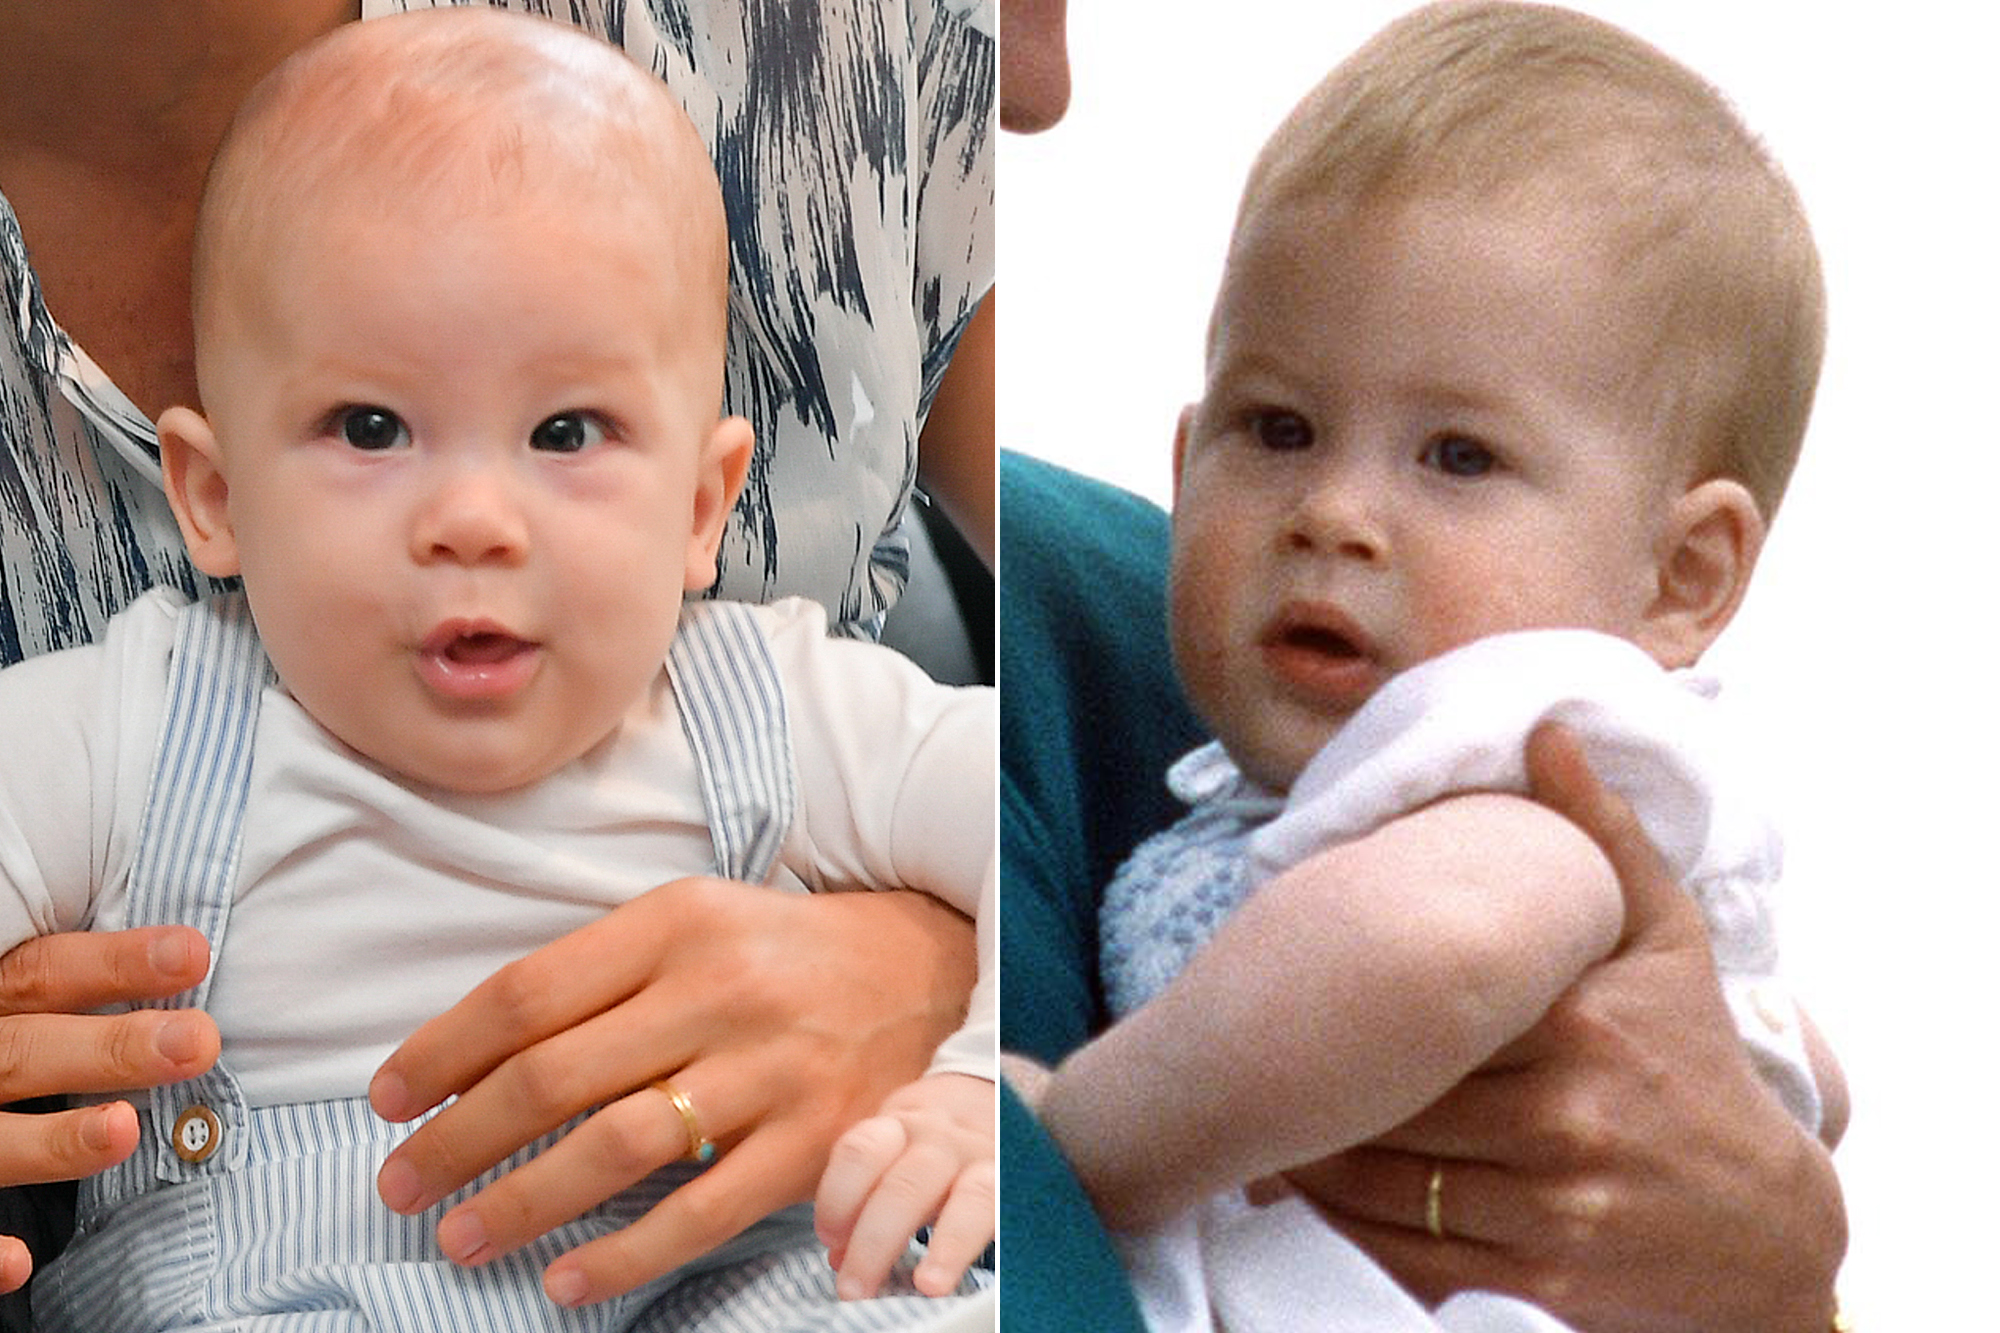 Baby Archie and Baby Prince Harry